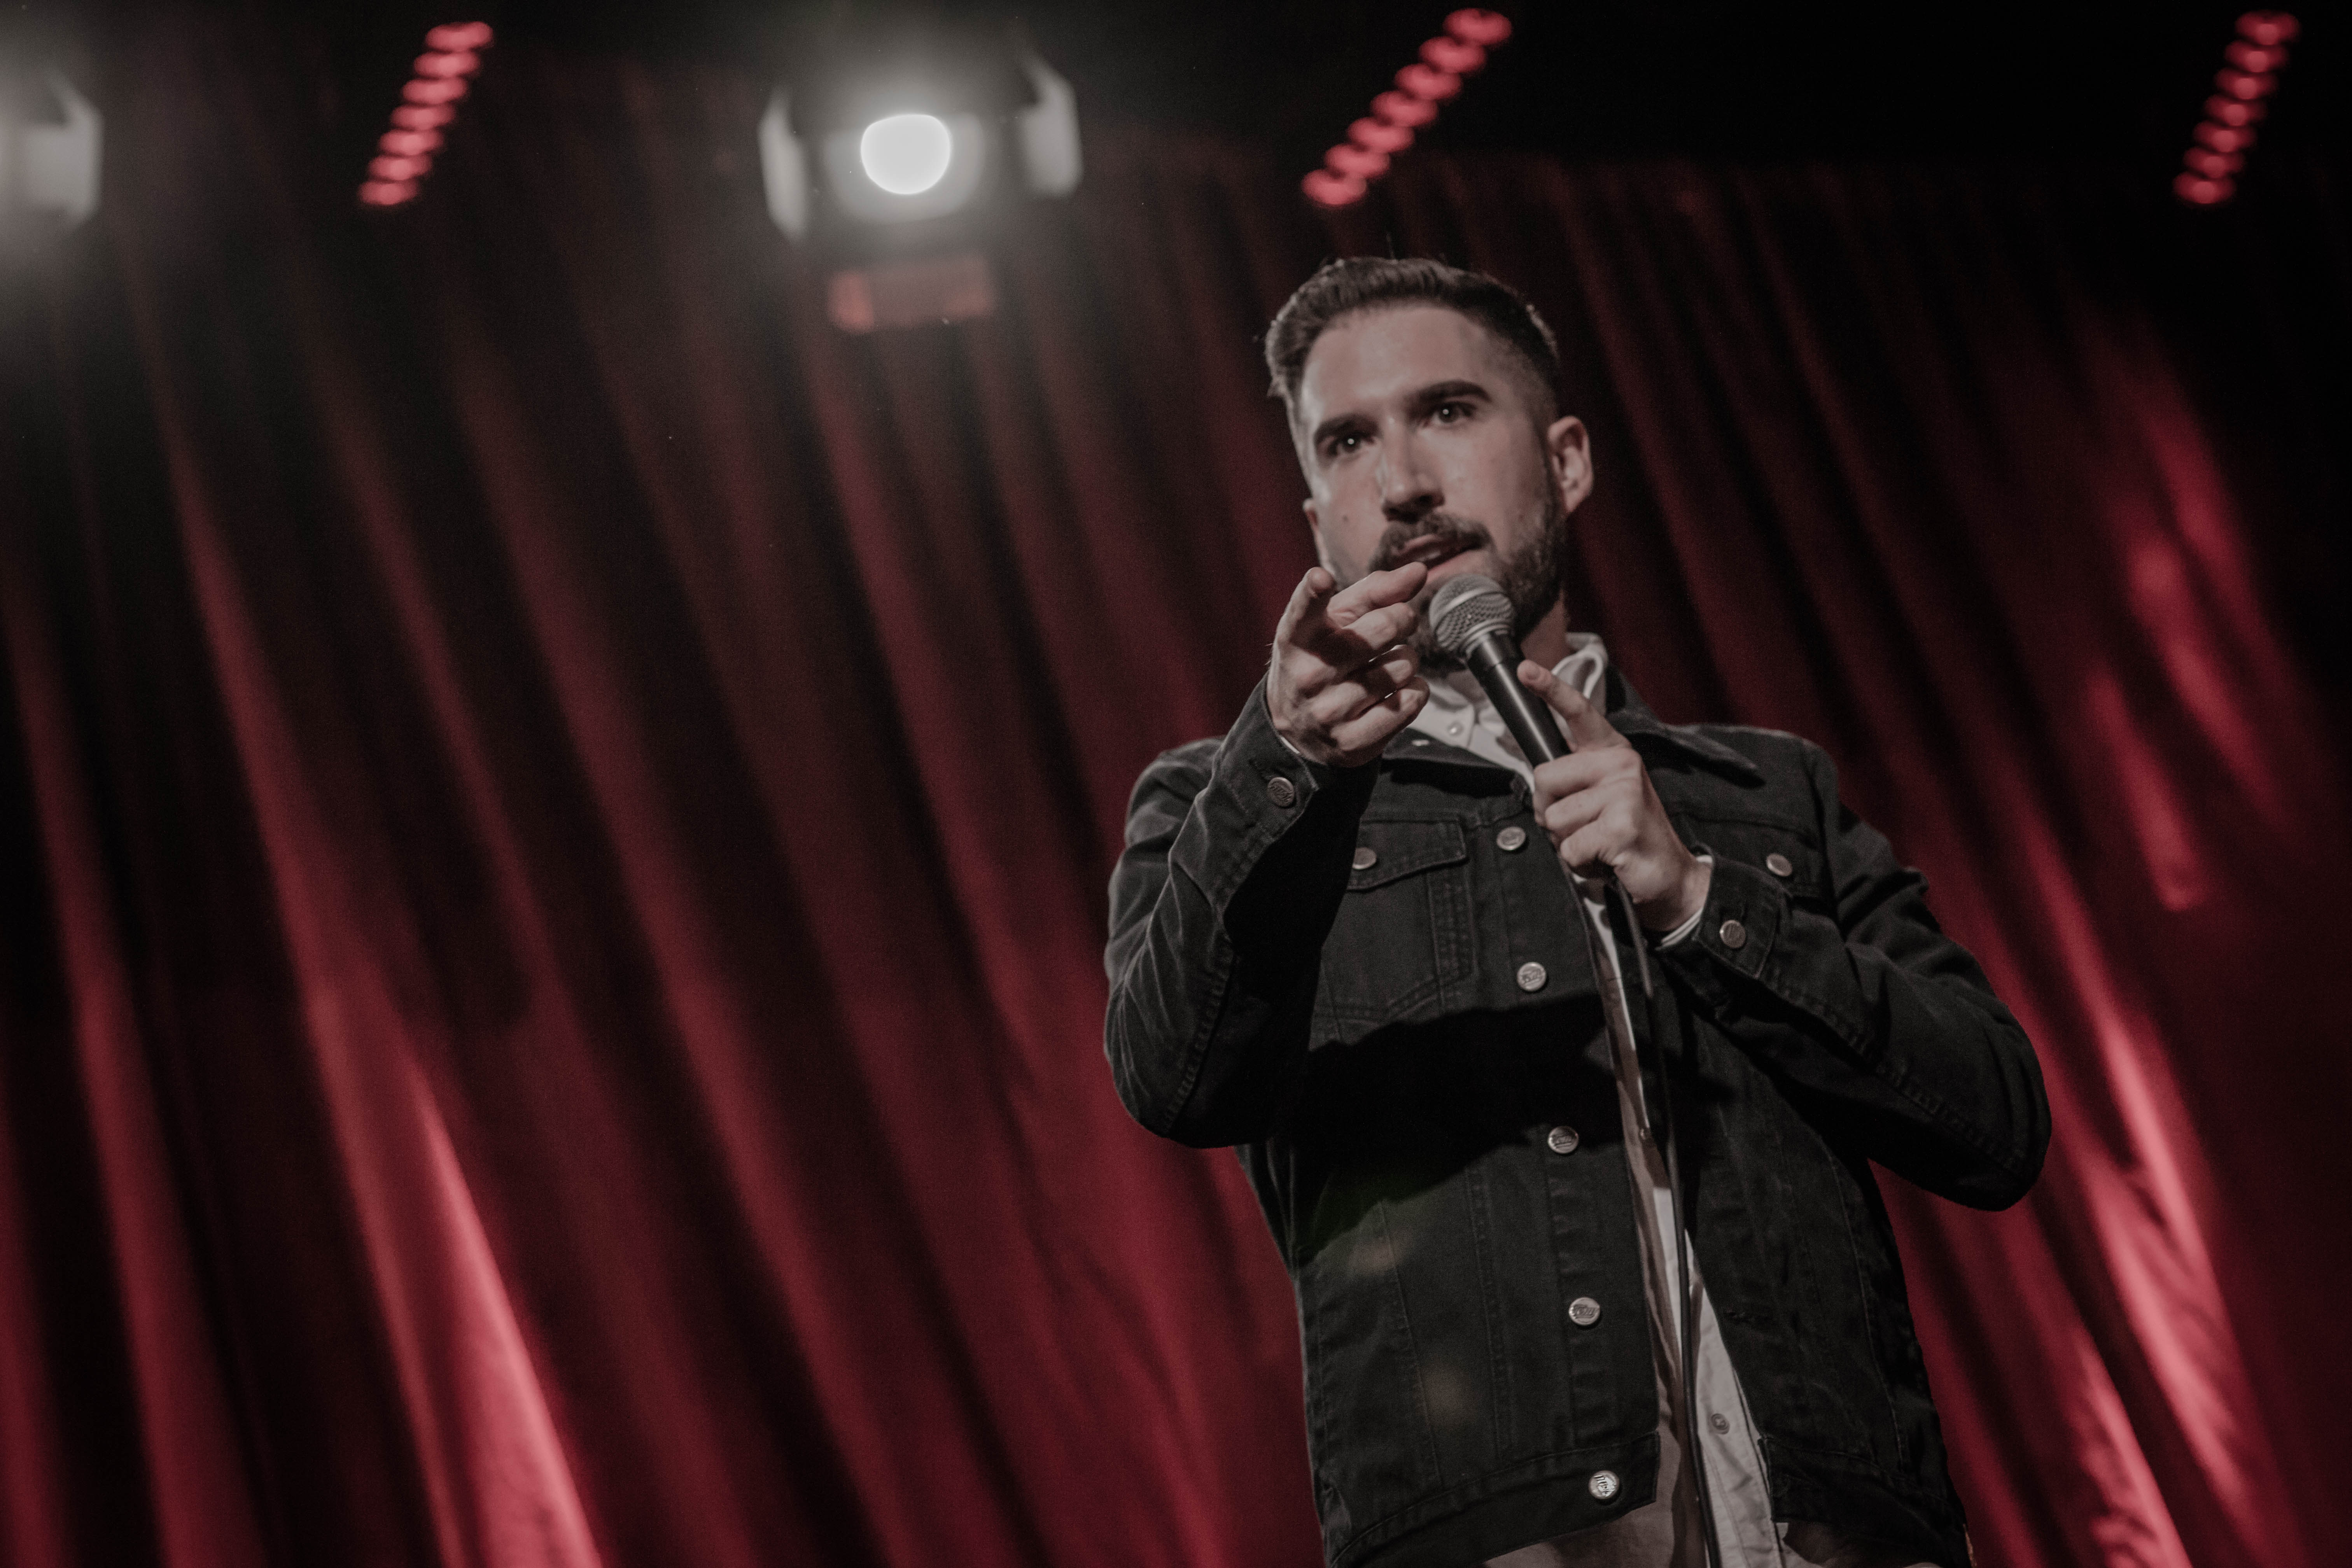 Mexican Comedian Alex Fernández On Finding Humor in Men's Insecurities & His Own White Privilege